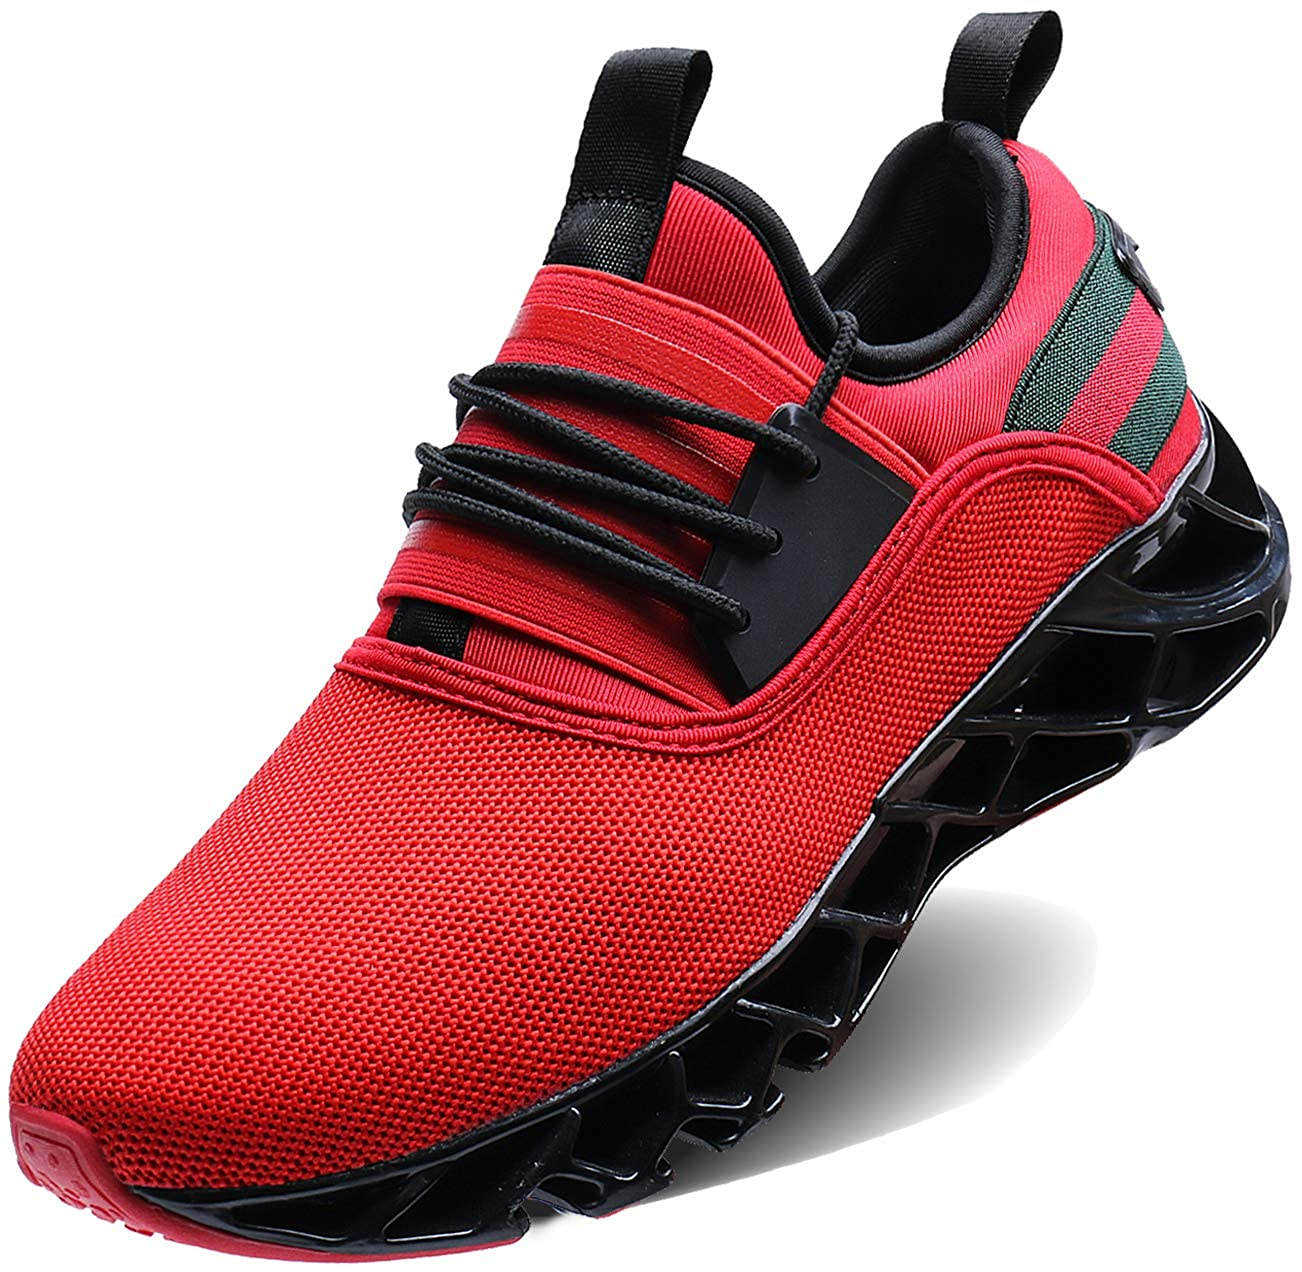 Red_2 Wonesion Mens Womens Water Sport shoes Quick Dry Aqua Socks Barefoot Outdoor Beach Swim Surf Pool Yoga shoes